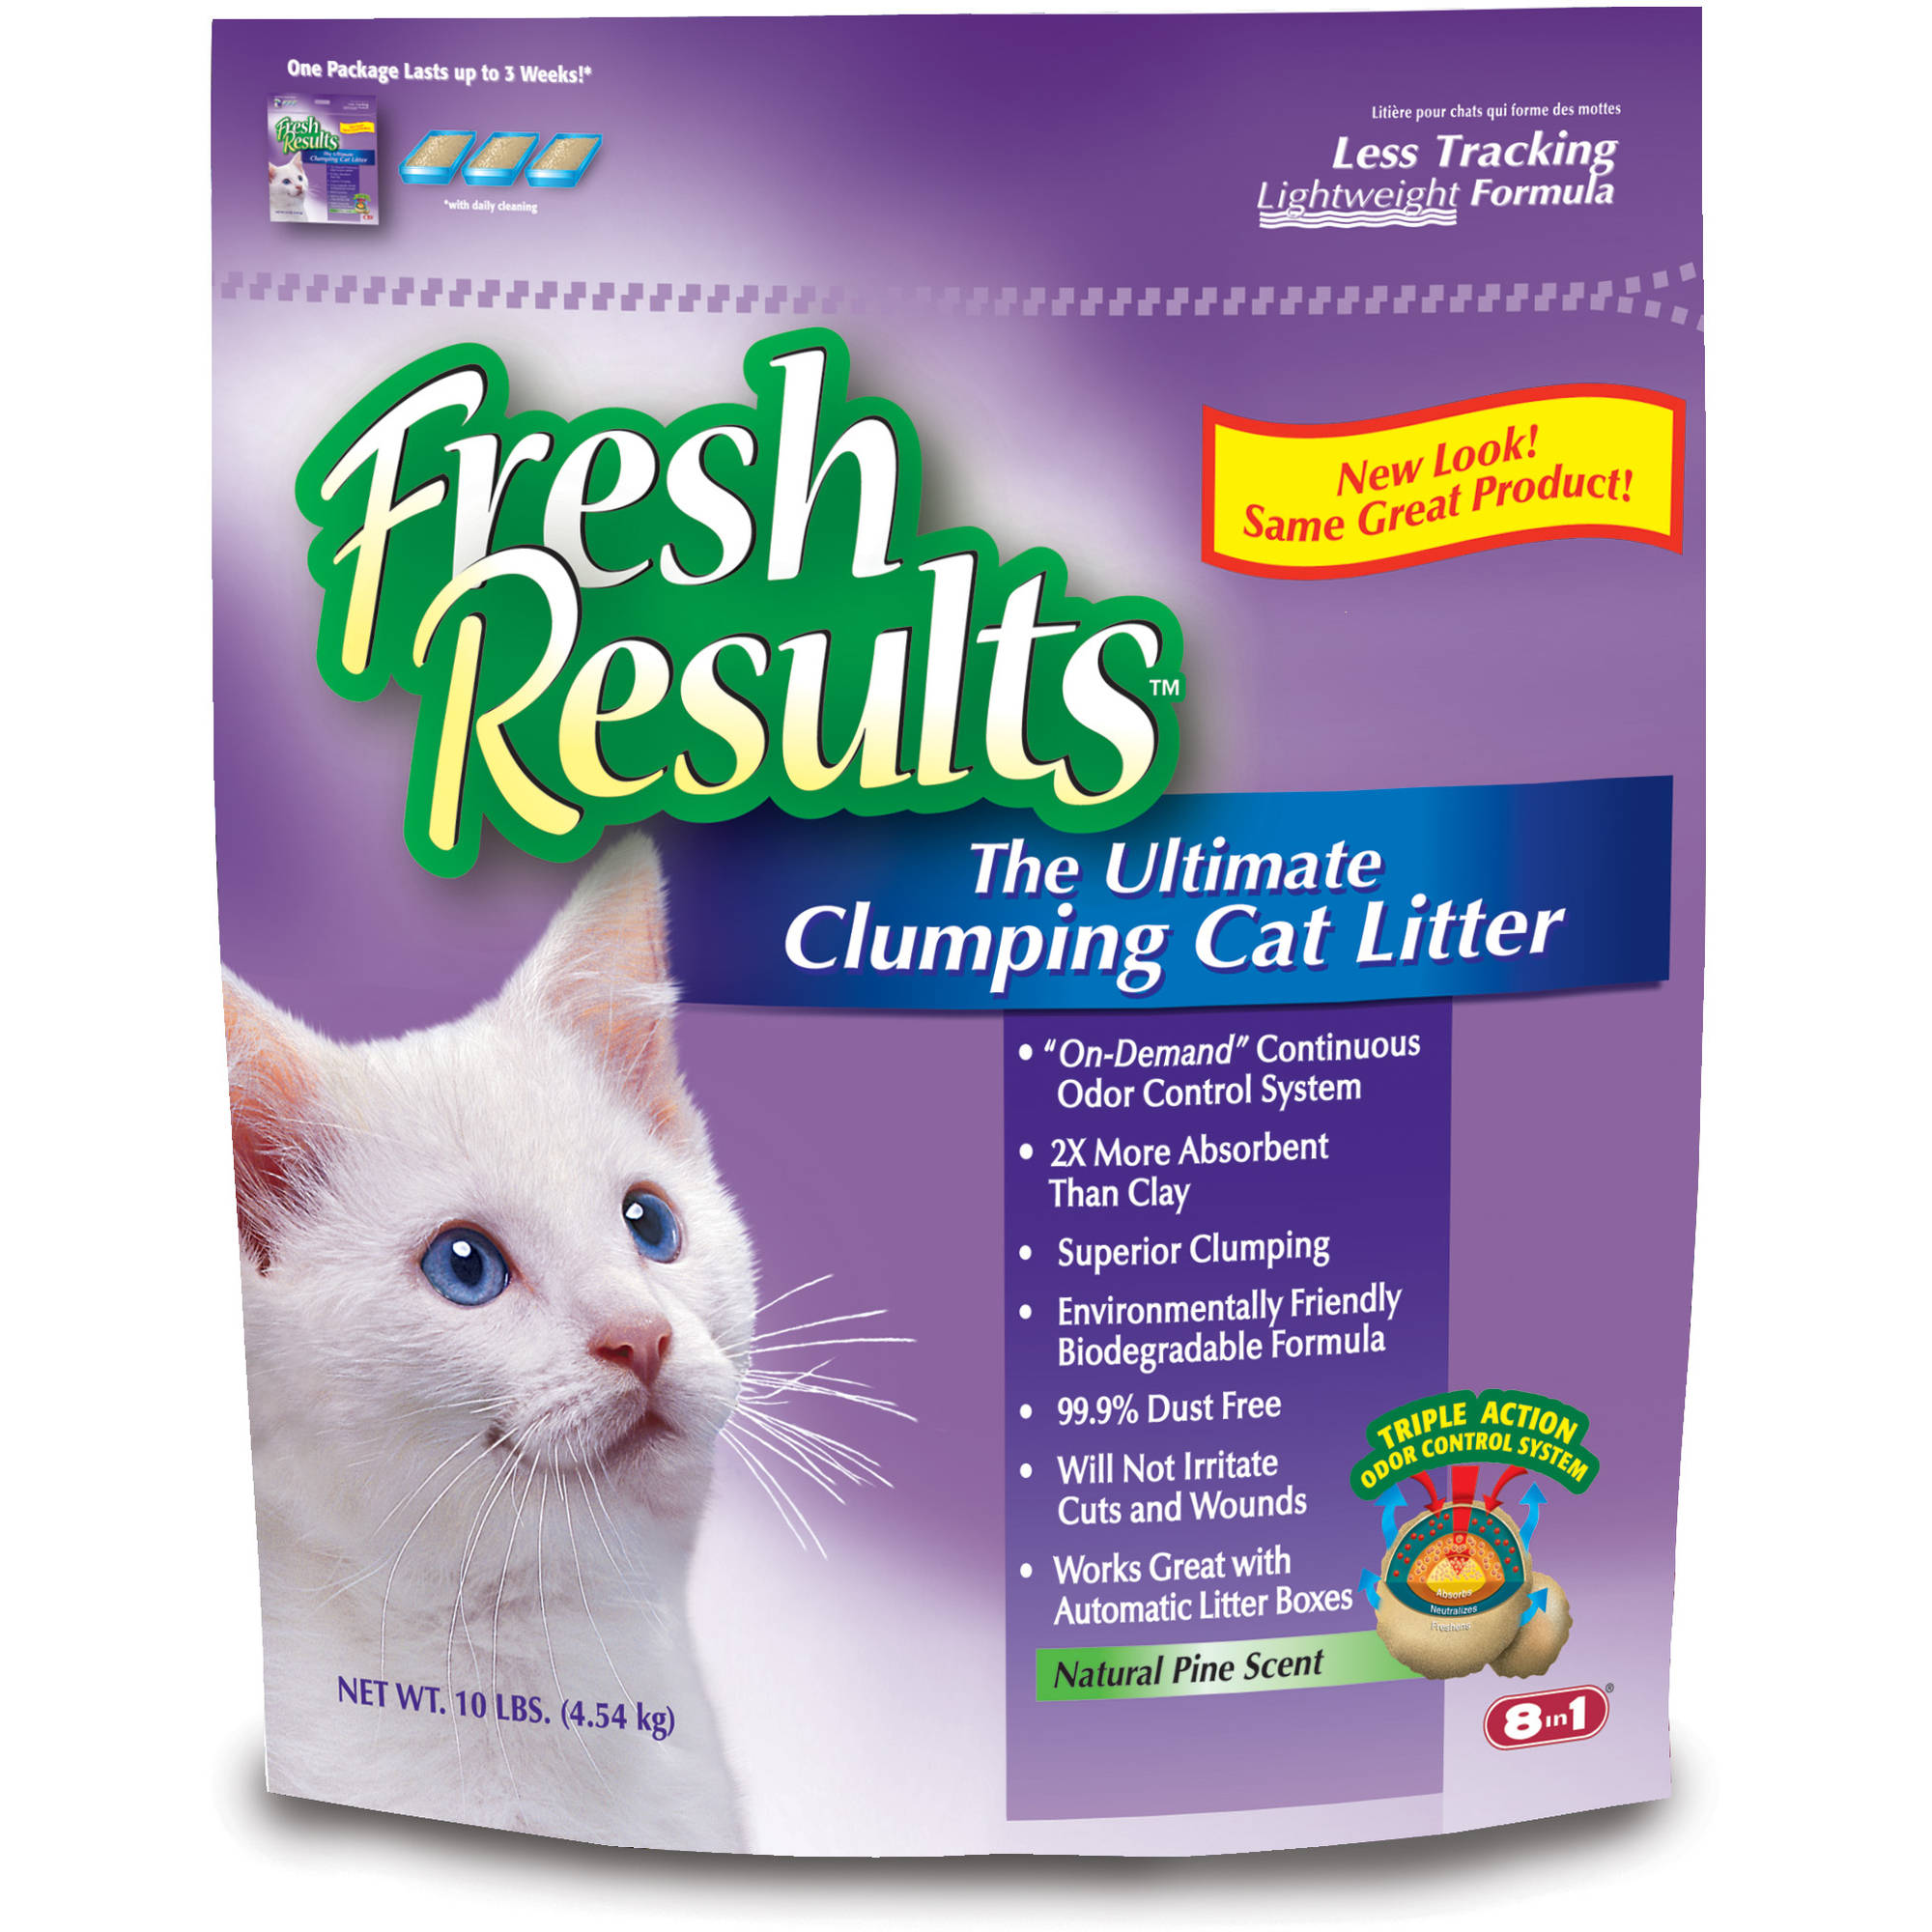 8In1 Pet Products: Cat Litter Fresh Results, 10 Lb